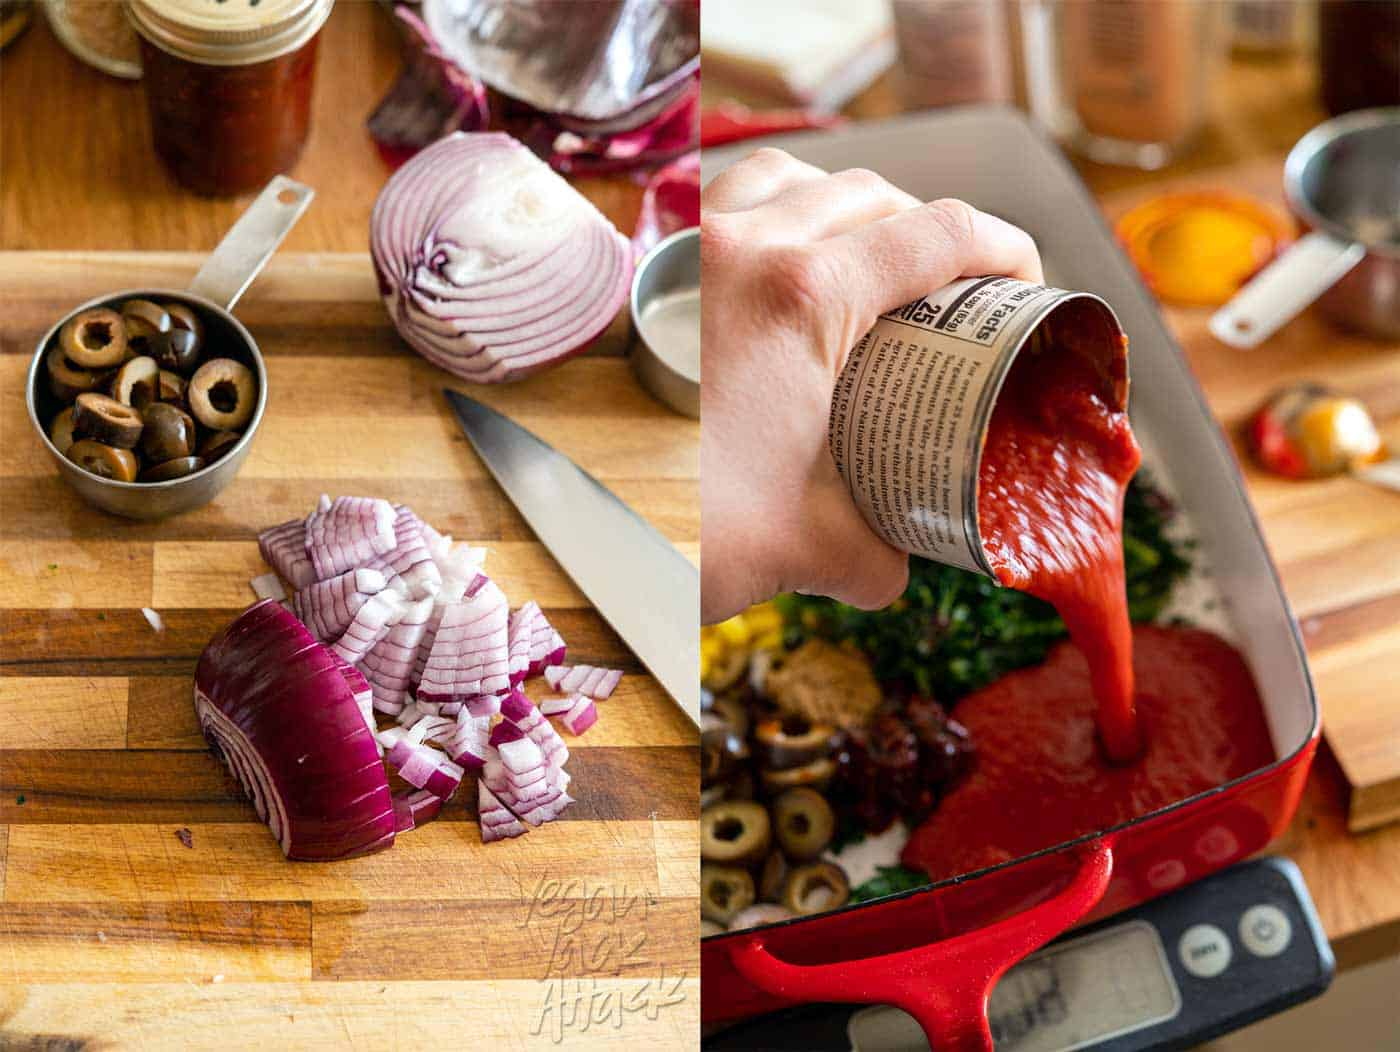 Image collage of ingredient prep, chopping onions and pouring tomato sauce